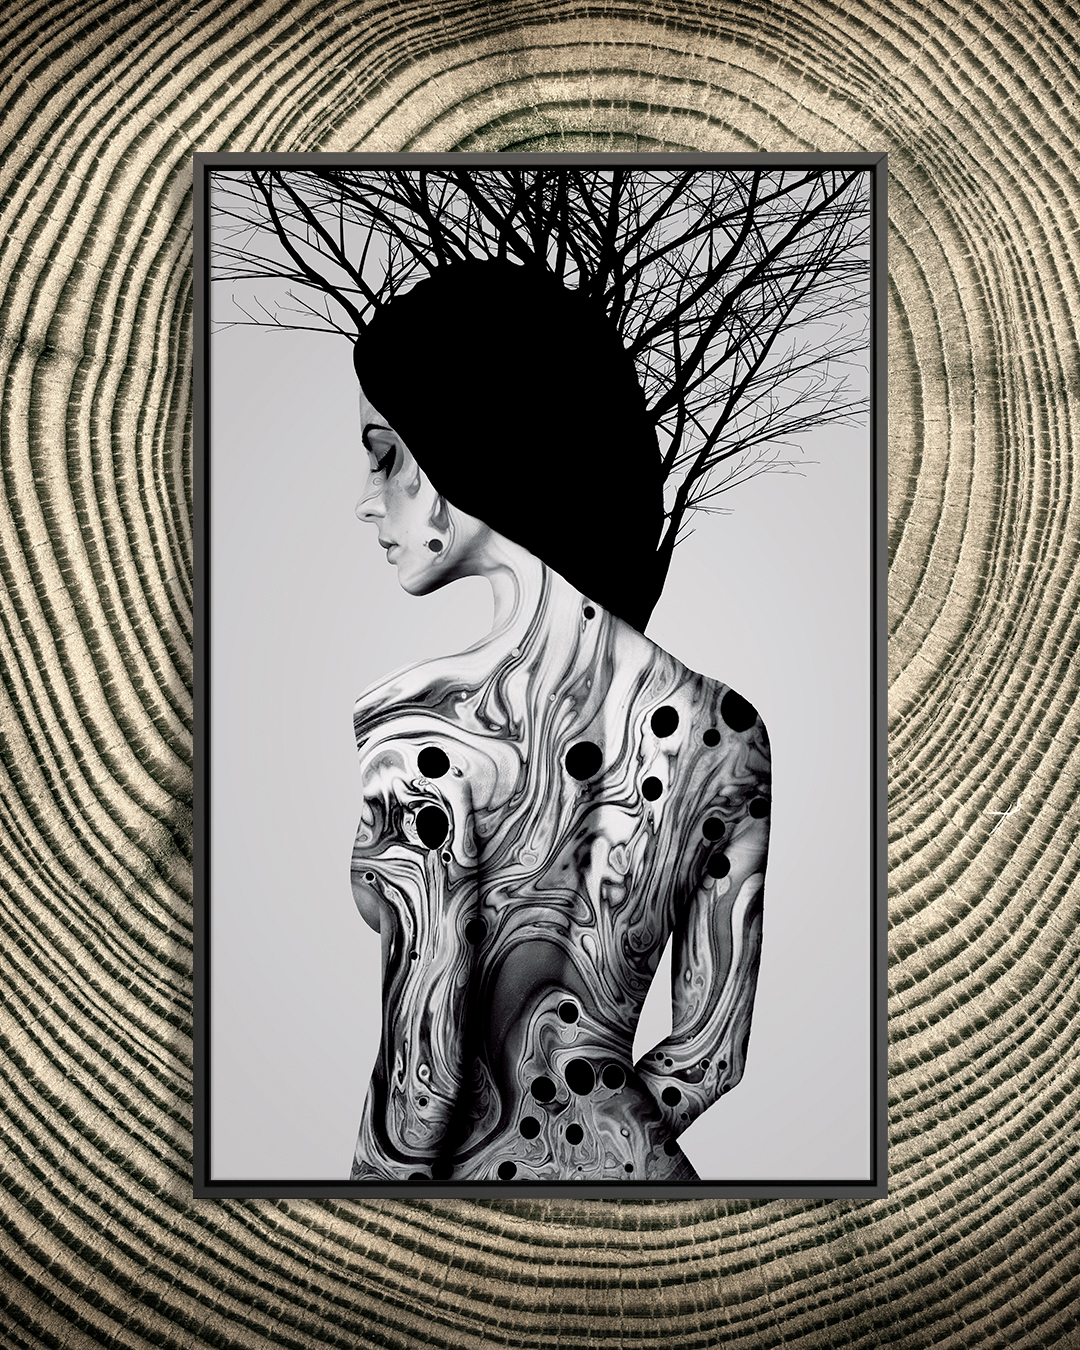 """""""Changing"""" by Dániel Taylor shows the back of a woman with part of her face in view while marbled swirls of black cover her body."""